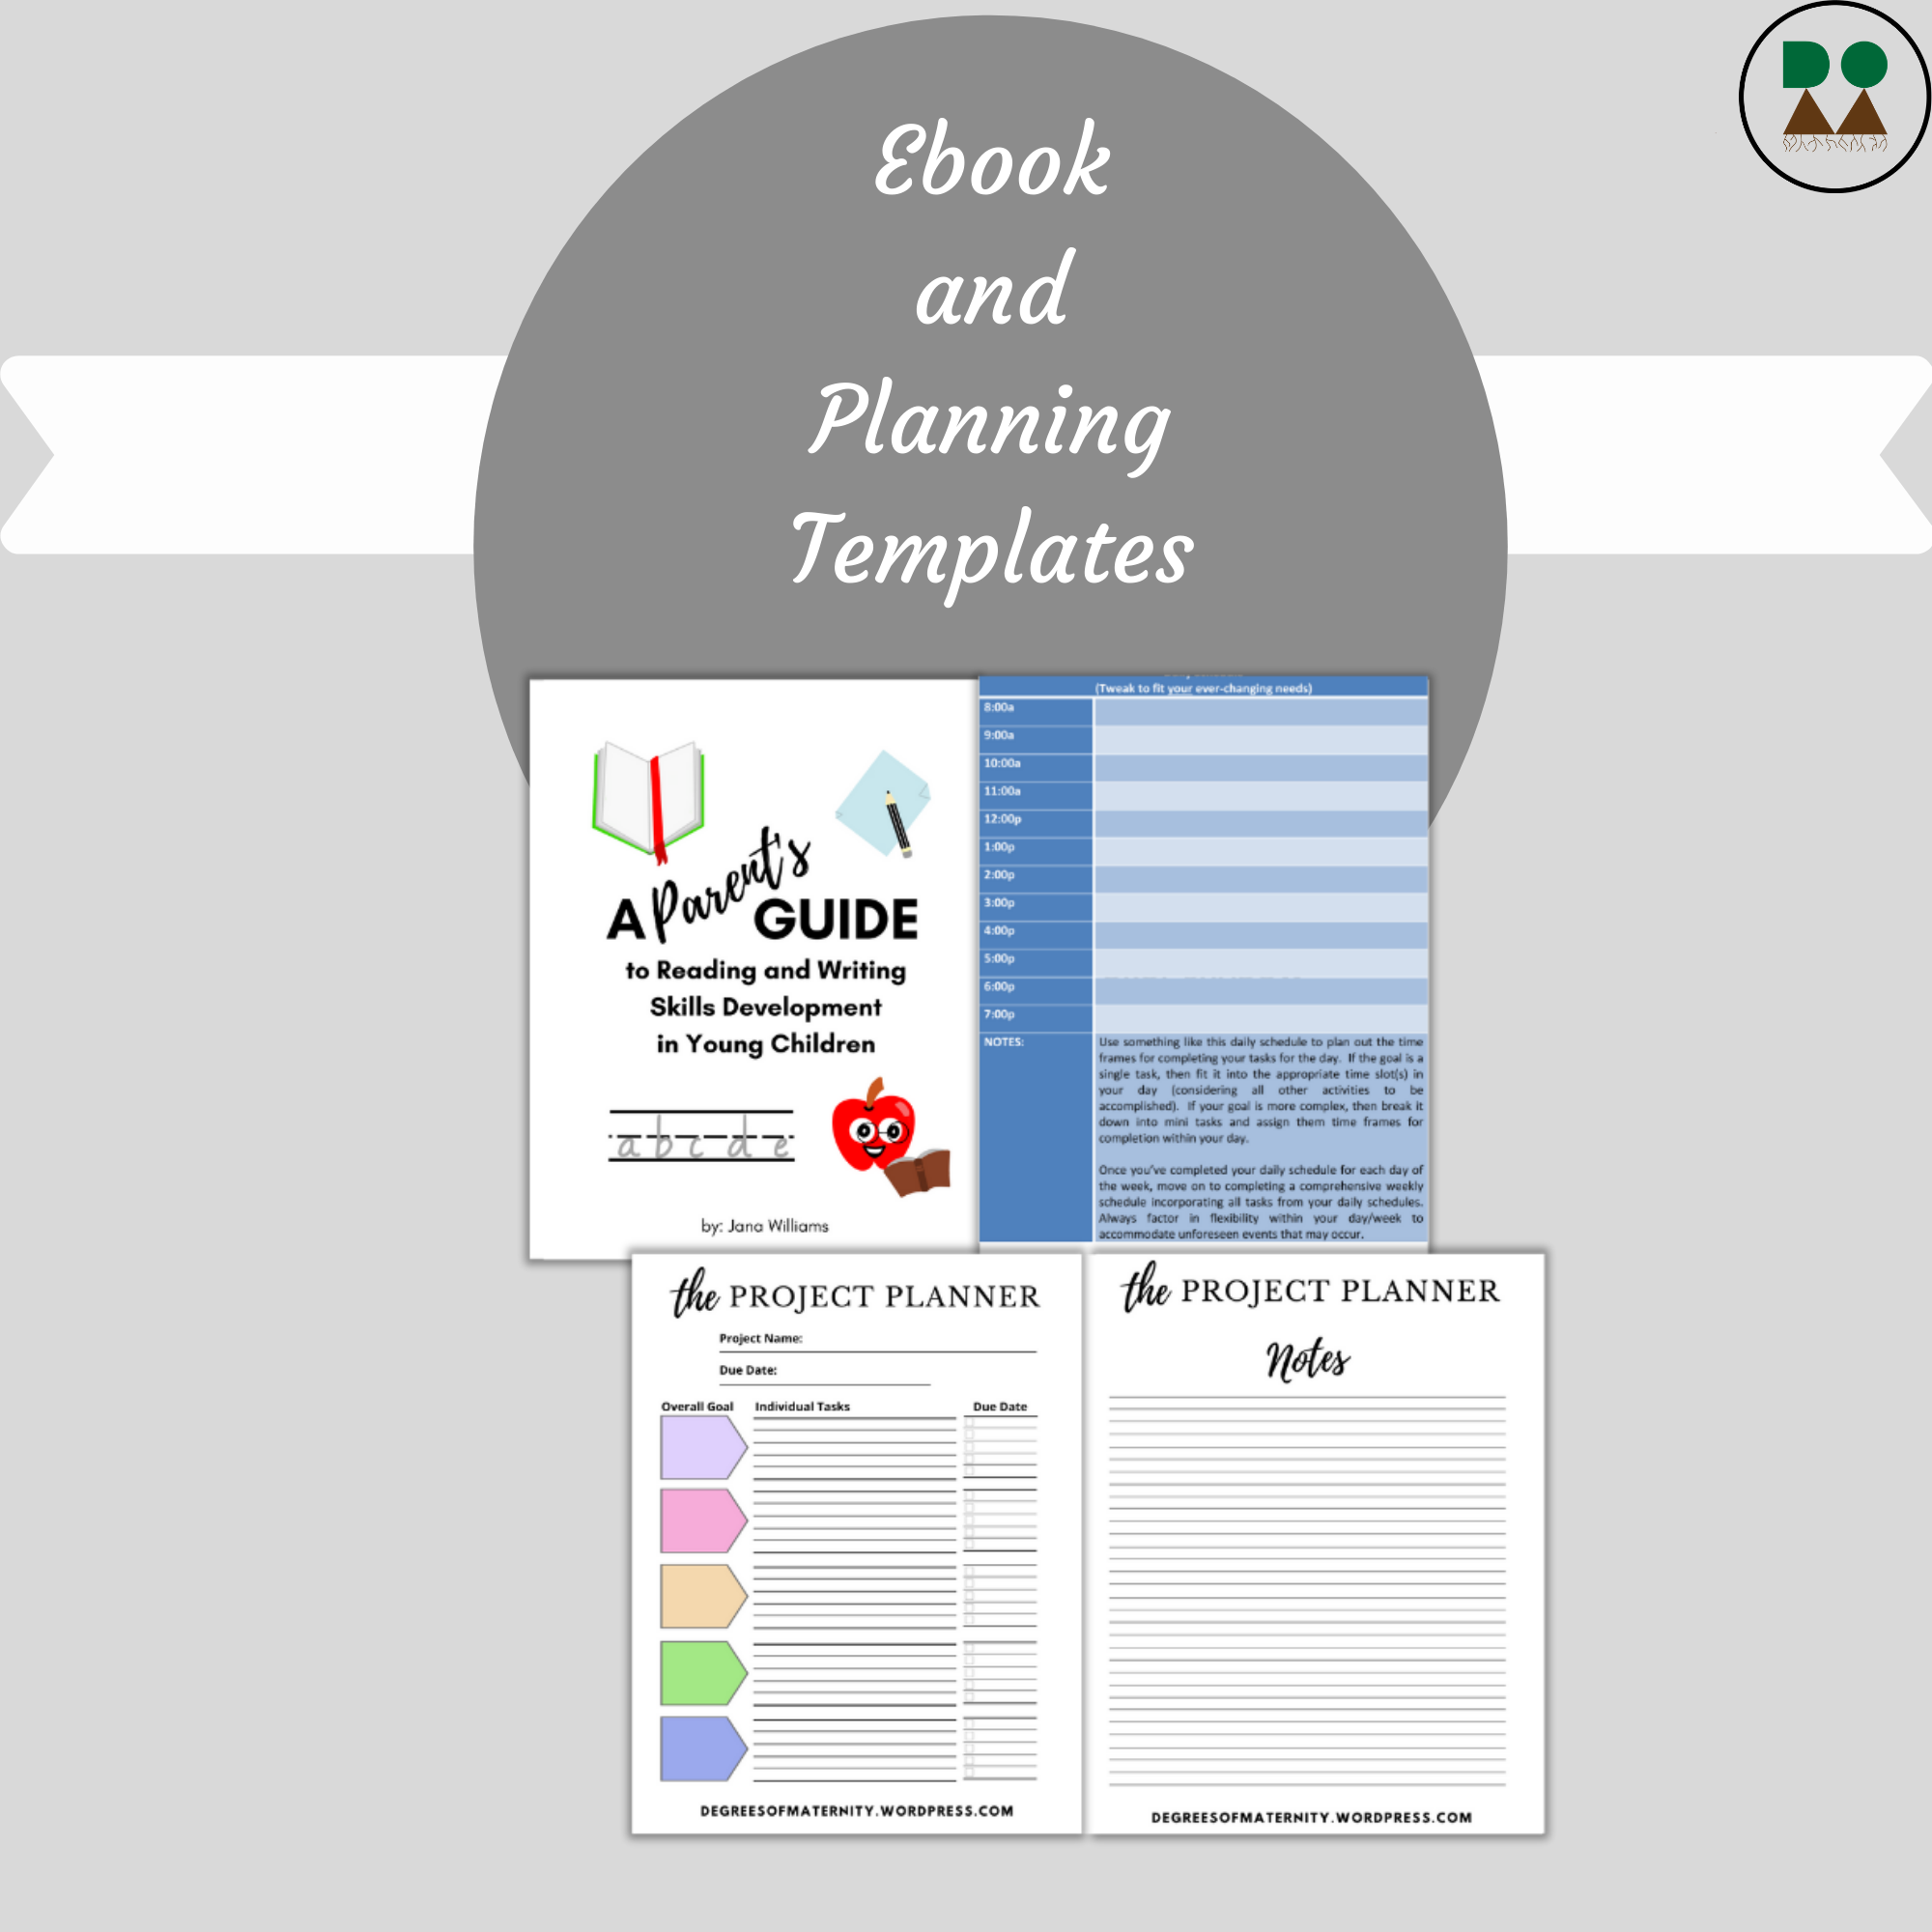 ebook-and-planning-templates